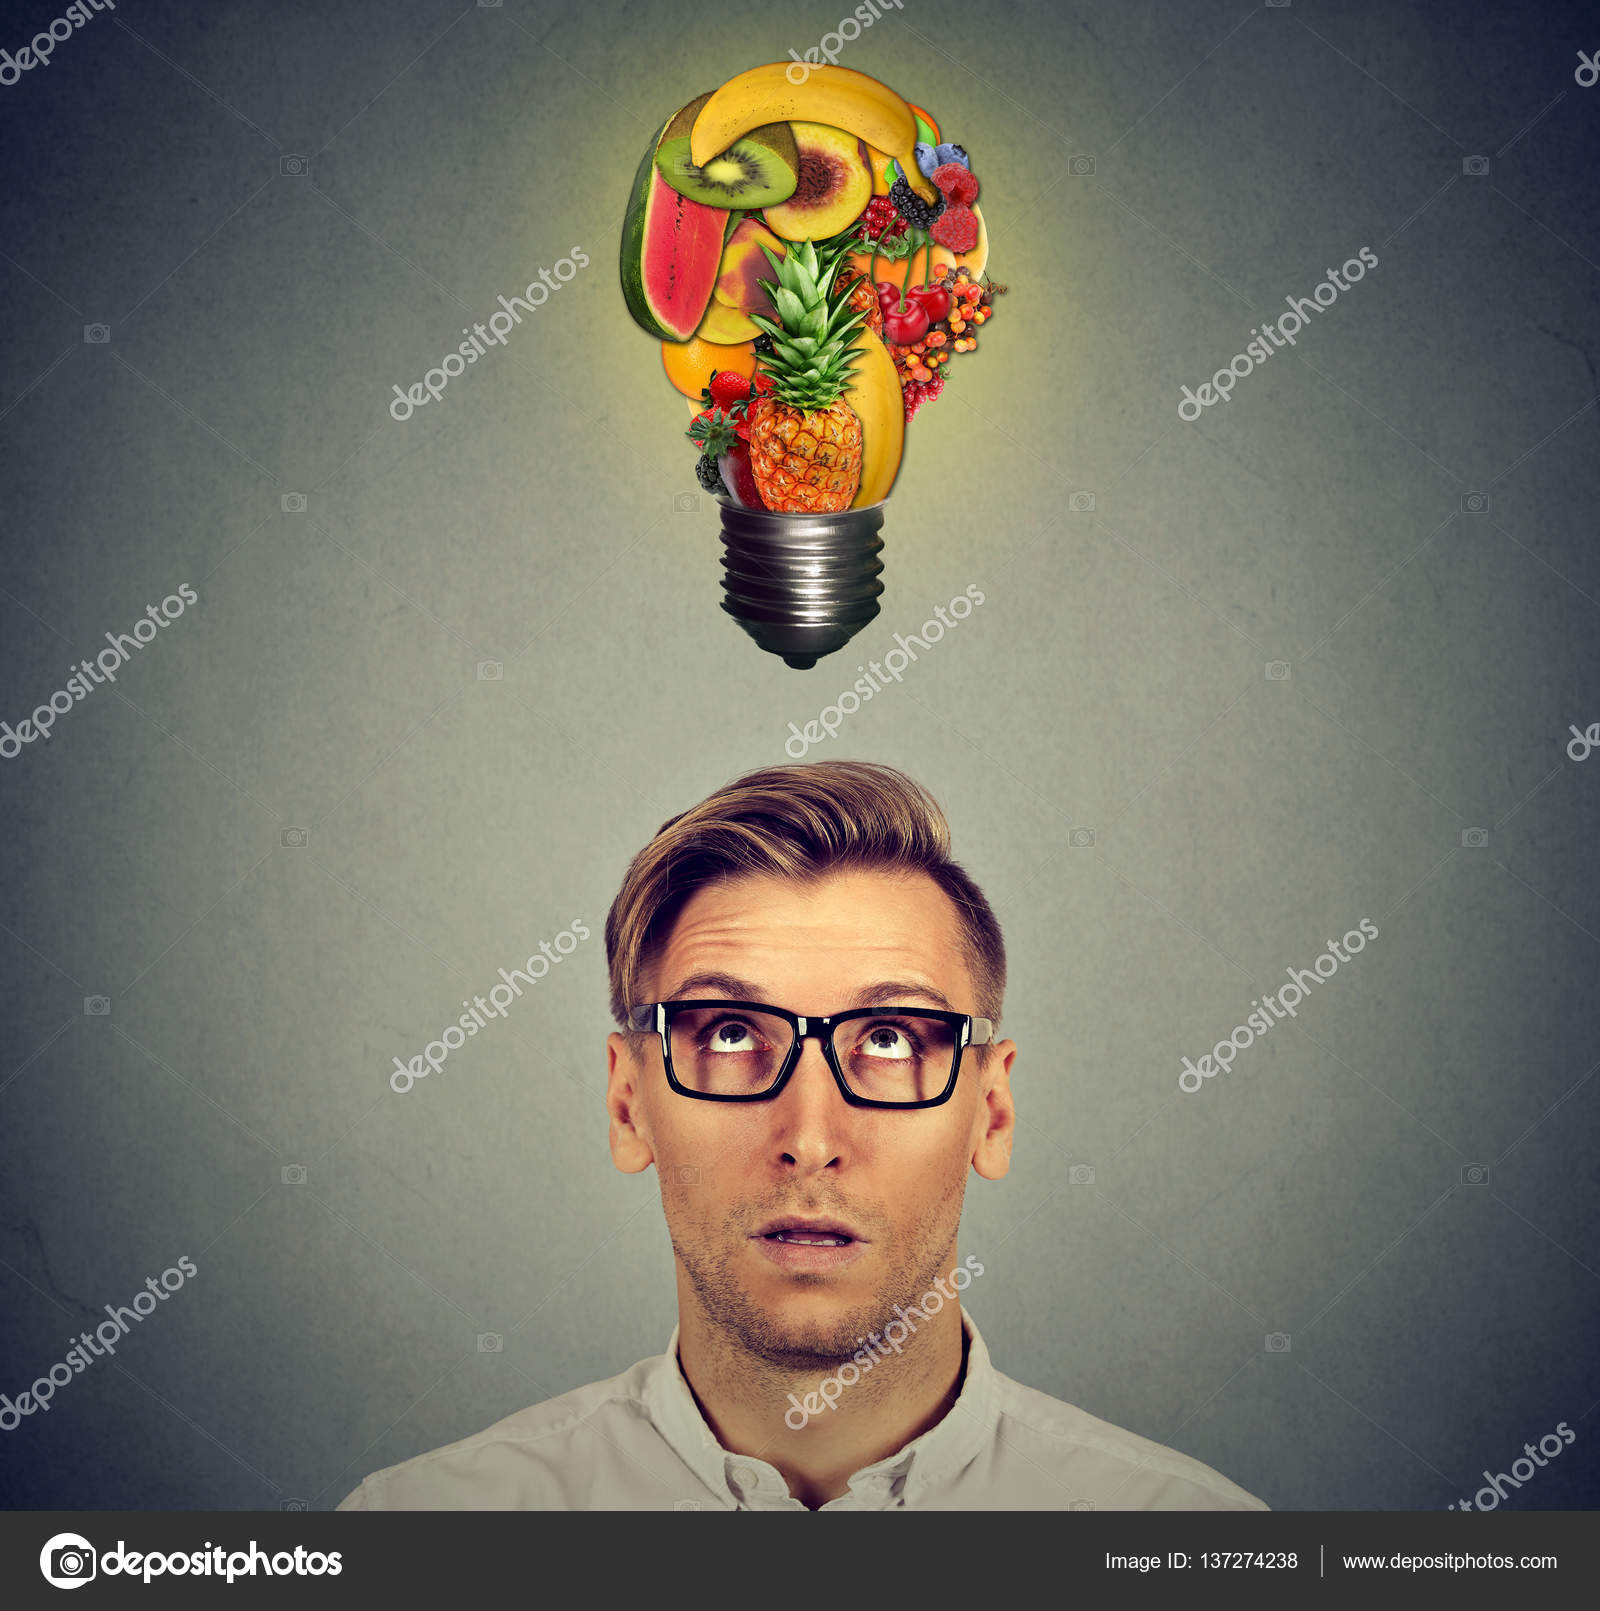 eating healthy man looking up at fruit light bulb stock photo